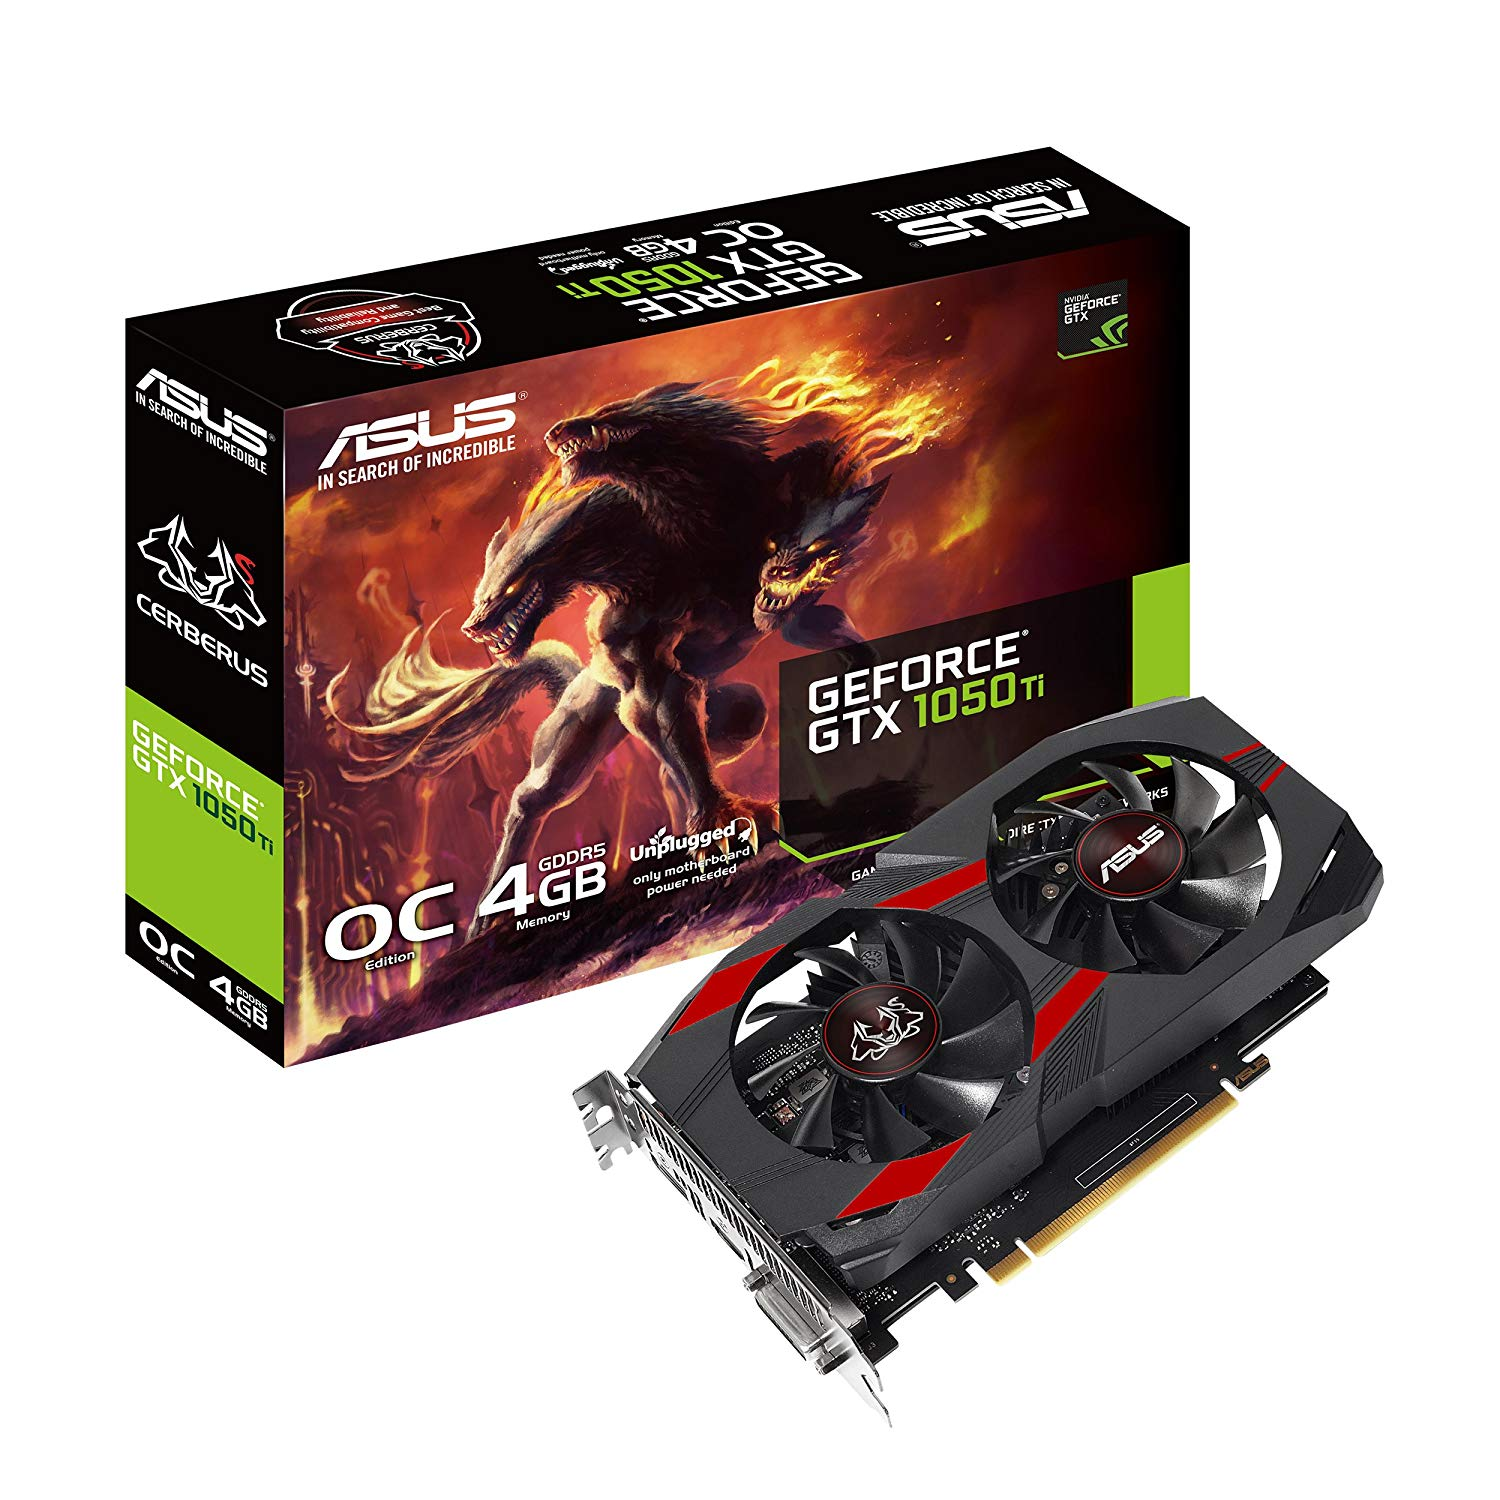 ASUS Cerberus GeForce GTX 1050 Ti 4GB OC Edition GDDR5 Gaming Graphics Card